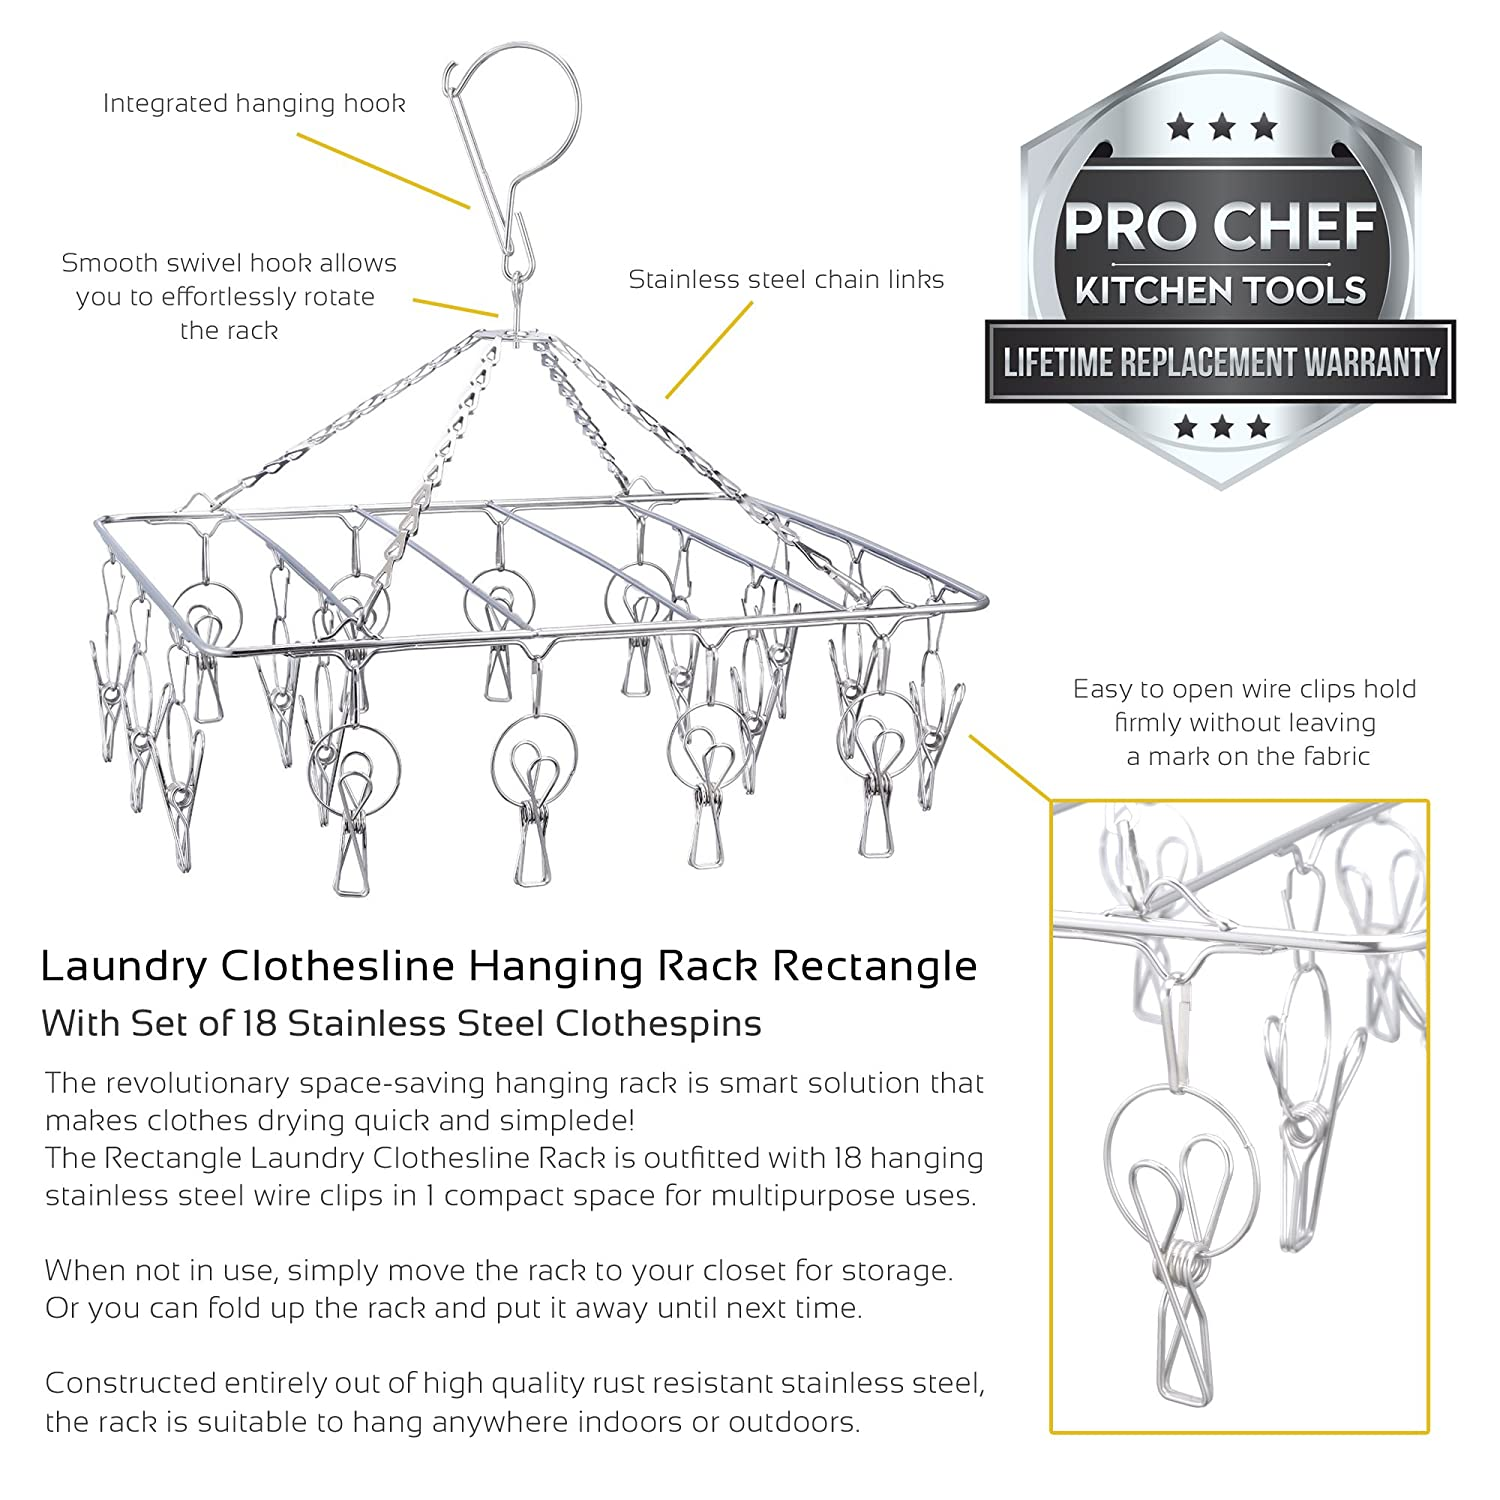 Pro Chef Kitchen Tools Clothes Drying Racks For Laundry Clothing Dryer Wiring Diagram Rectangle Rack Portable Clothesline Includes 18 Metal Clothespins Clips Set